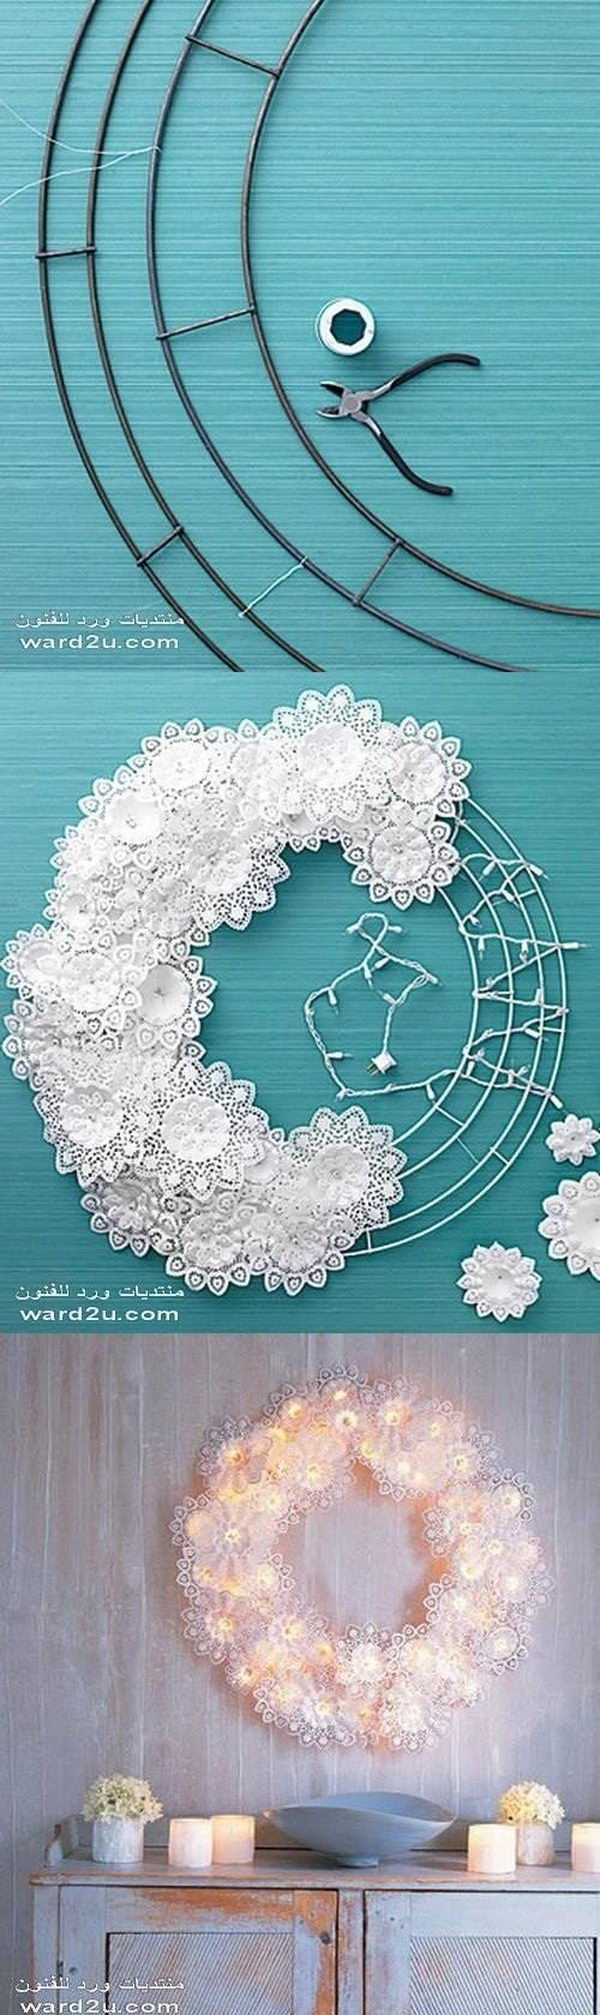 20 Creative DIY Wreath Ideas & Tutorials